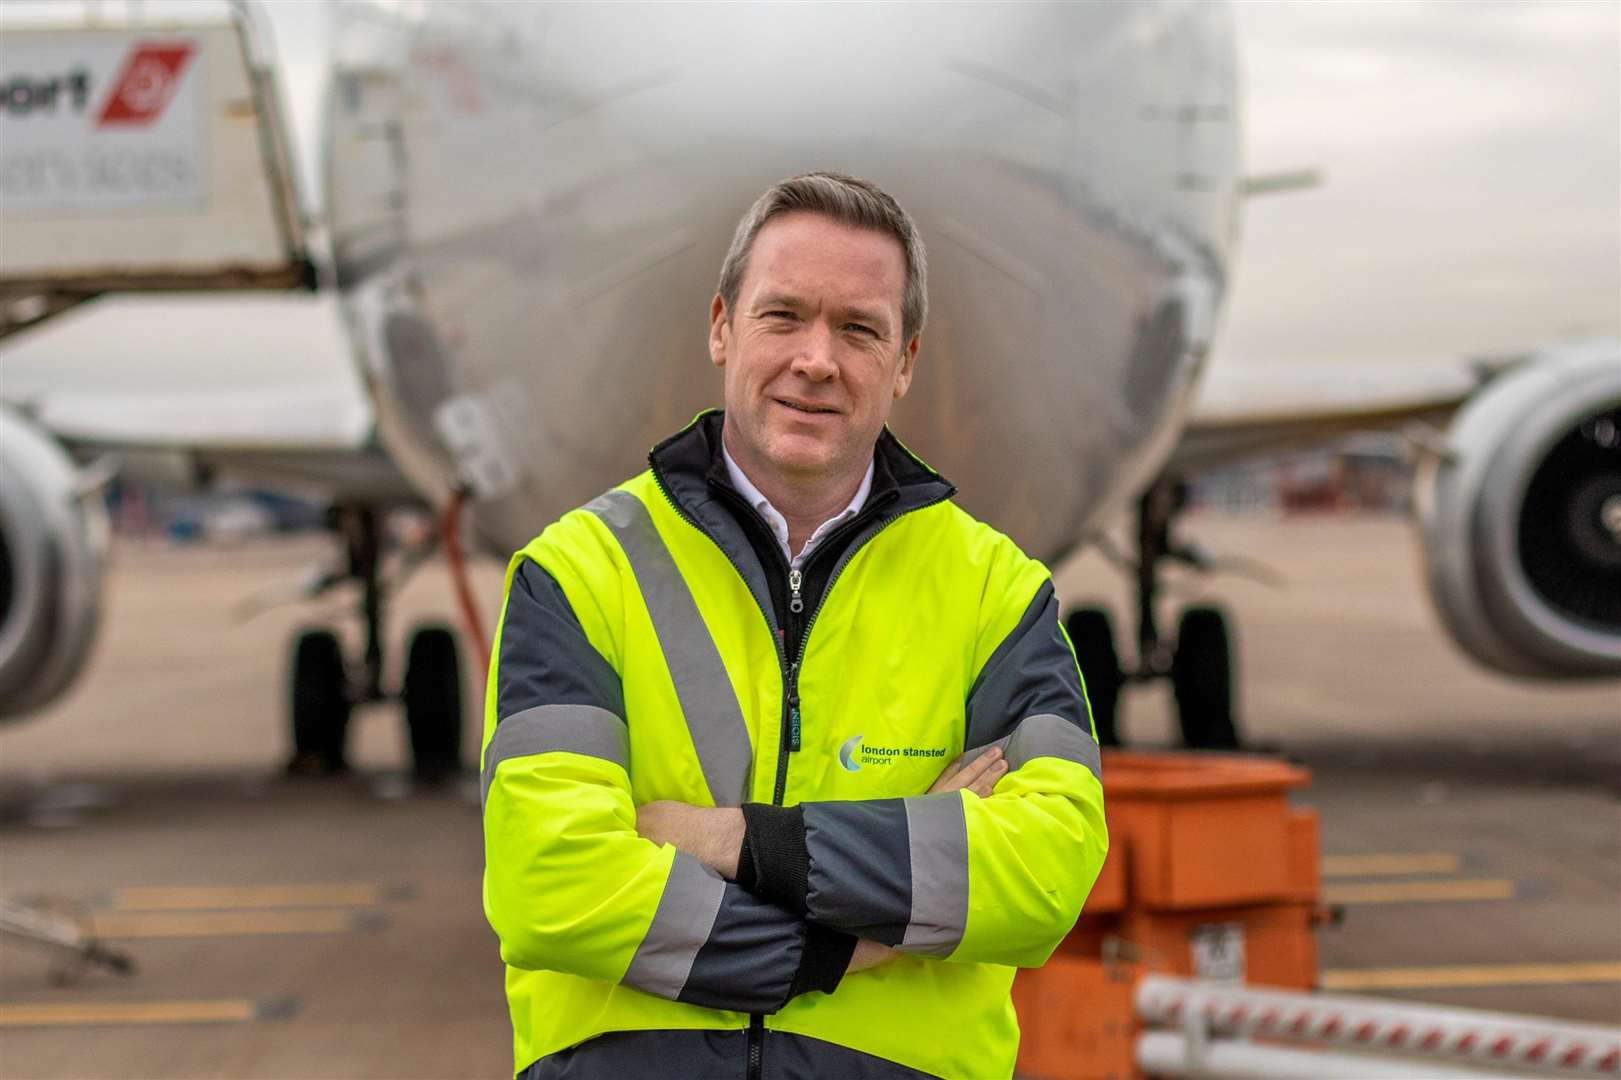 Stansted Airport CEO, Ken O'Toole